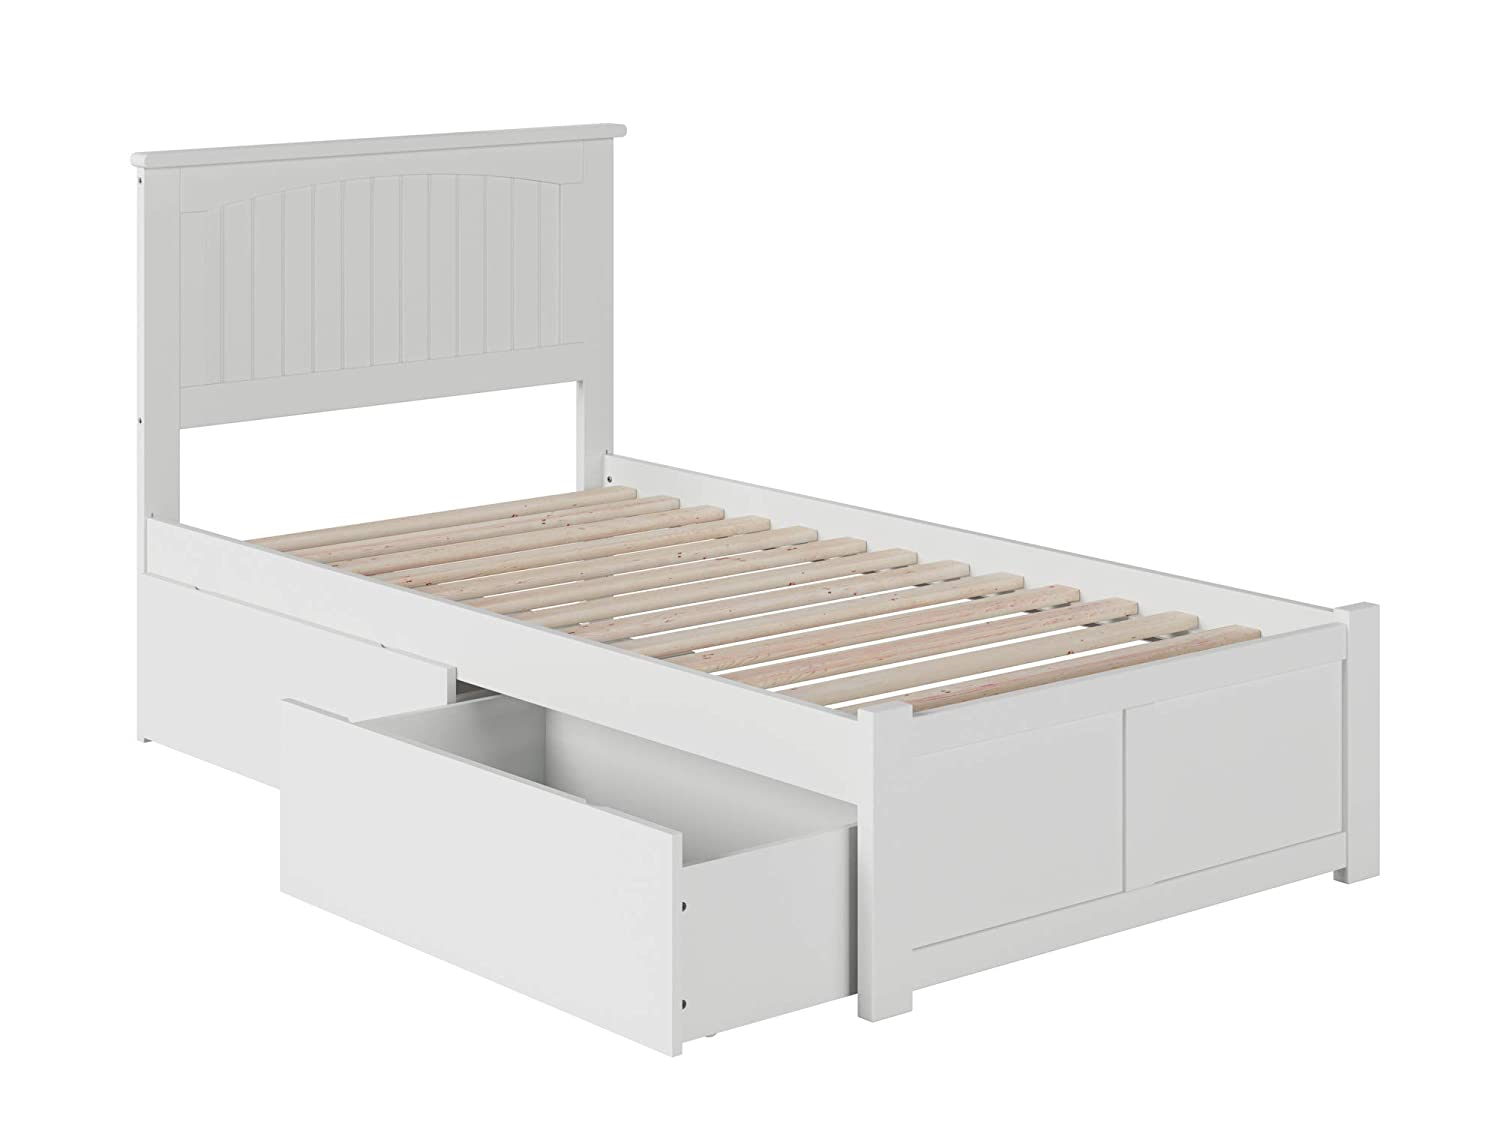 Atlantic Furniture AR8212112 Nantucket Platform Bed with 2 Urban Bed Drawers, Twin XL, White